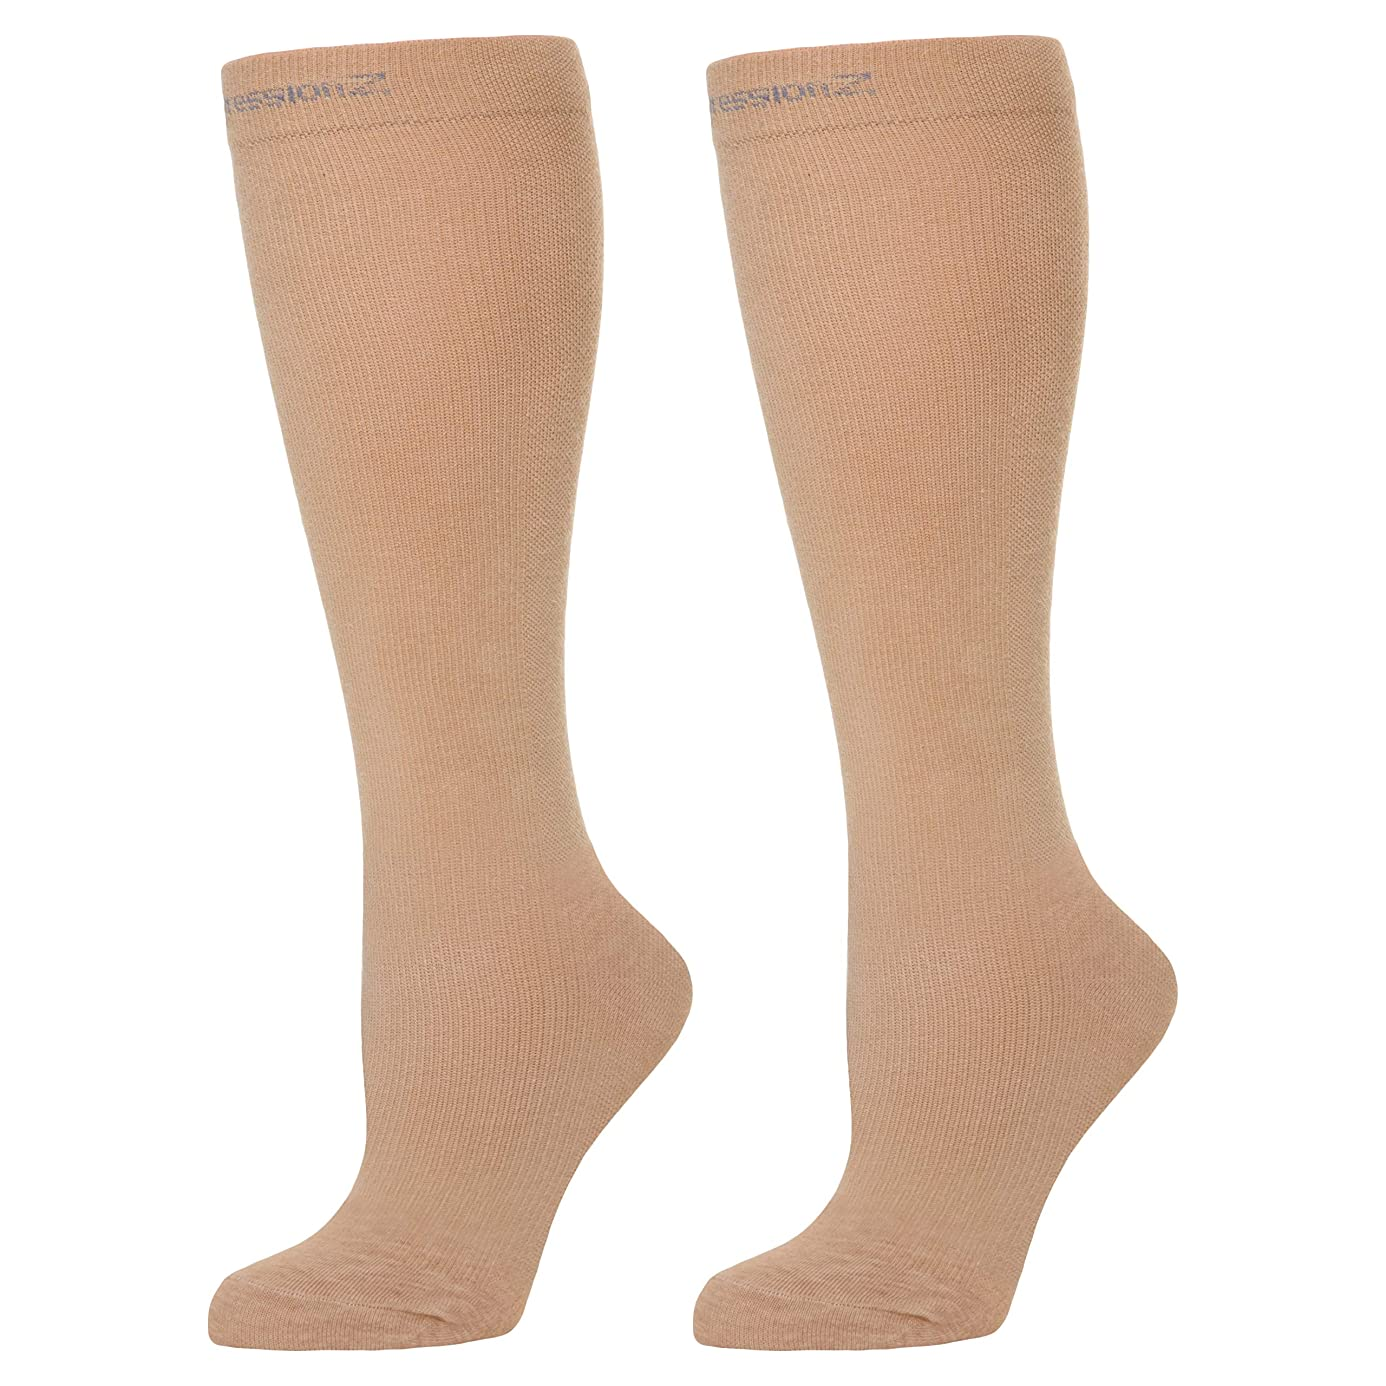 Compression Socks Men & Women - Perfect for Nurses, Runners, Athletes, Diabetics, Travelers - 20–30 mmHg Graduated Compression